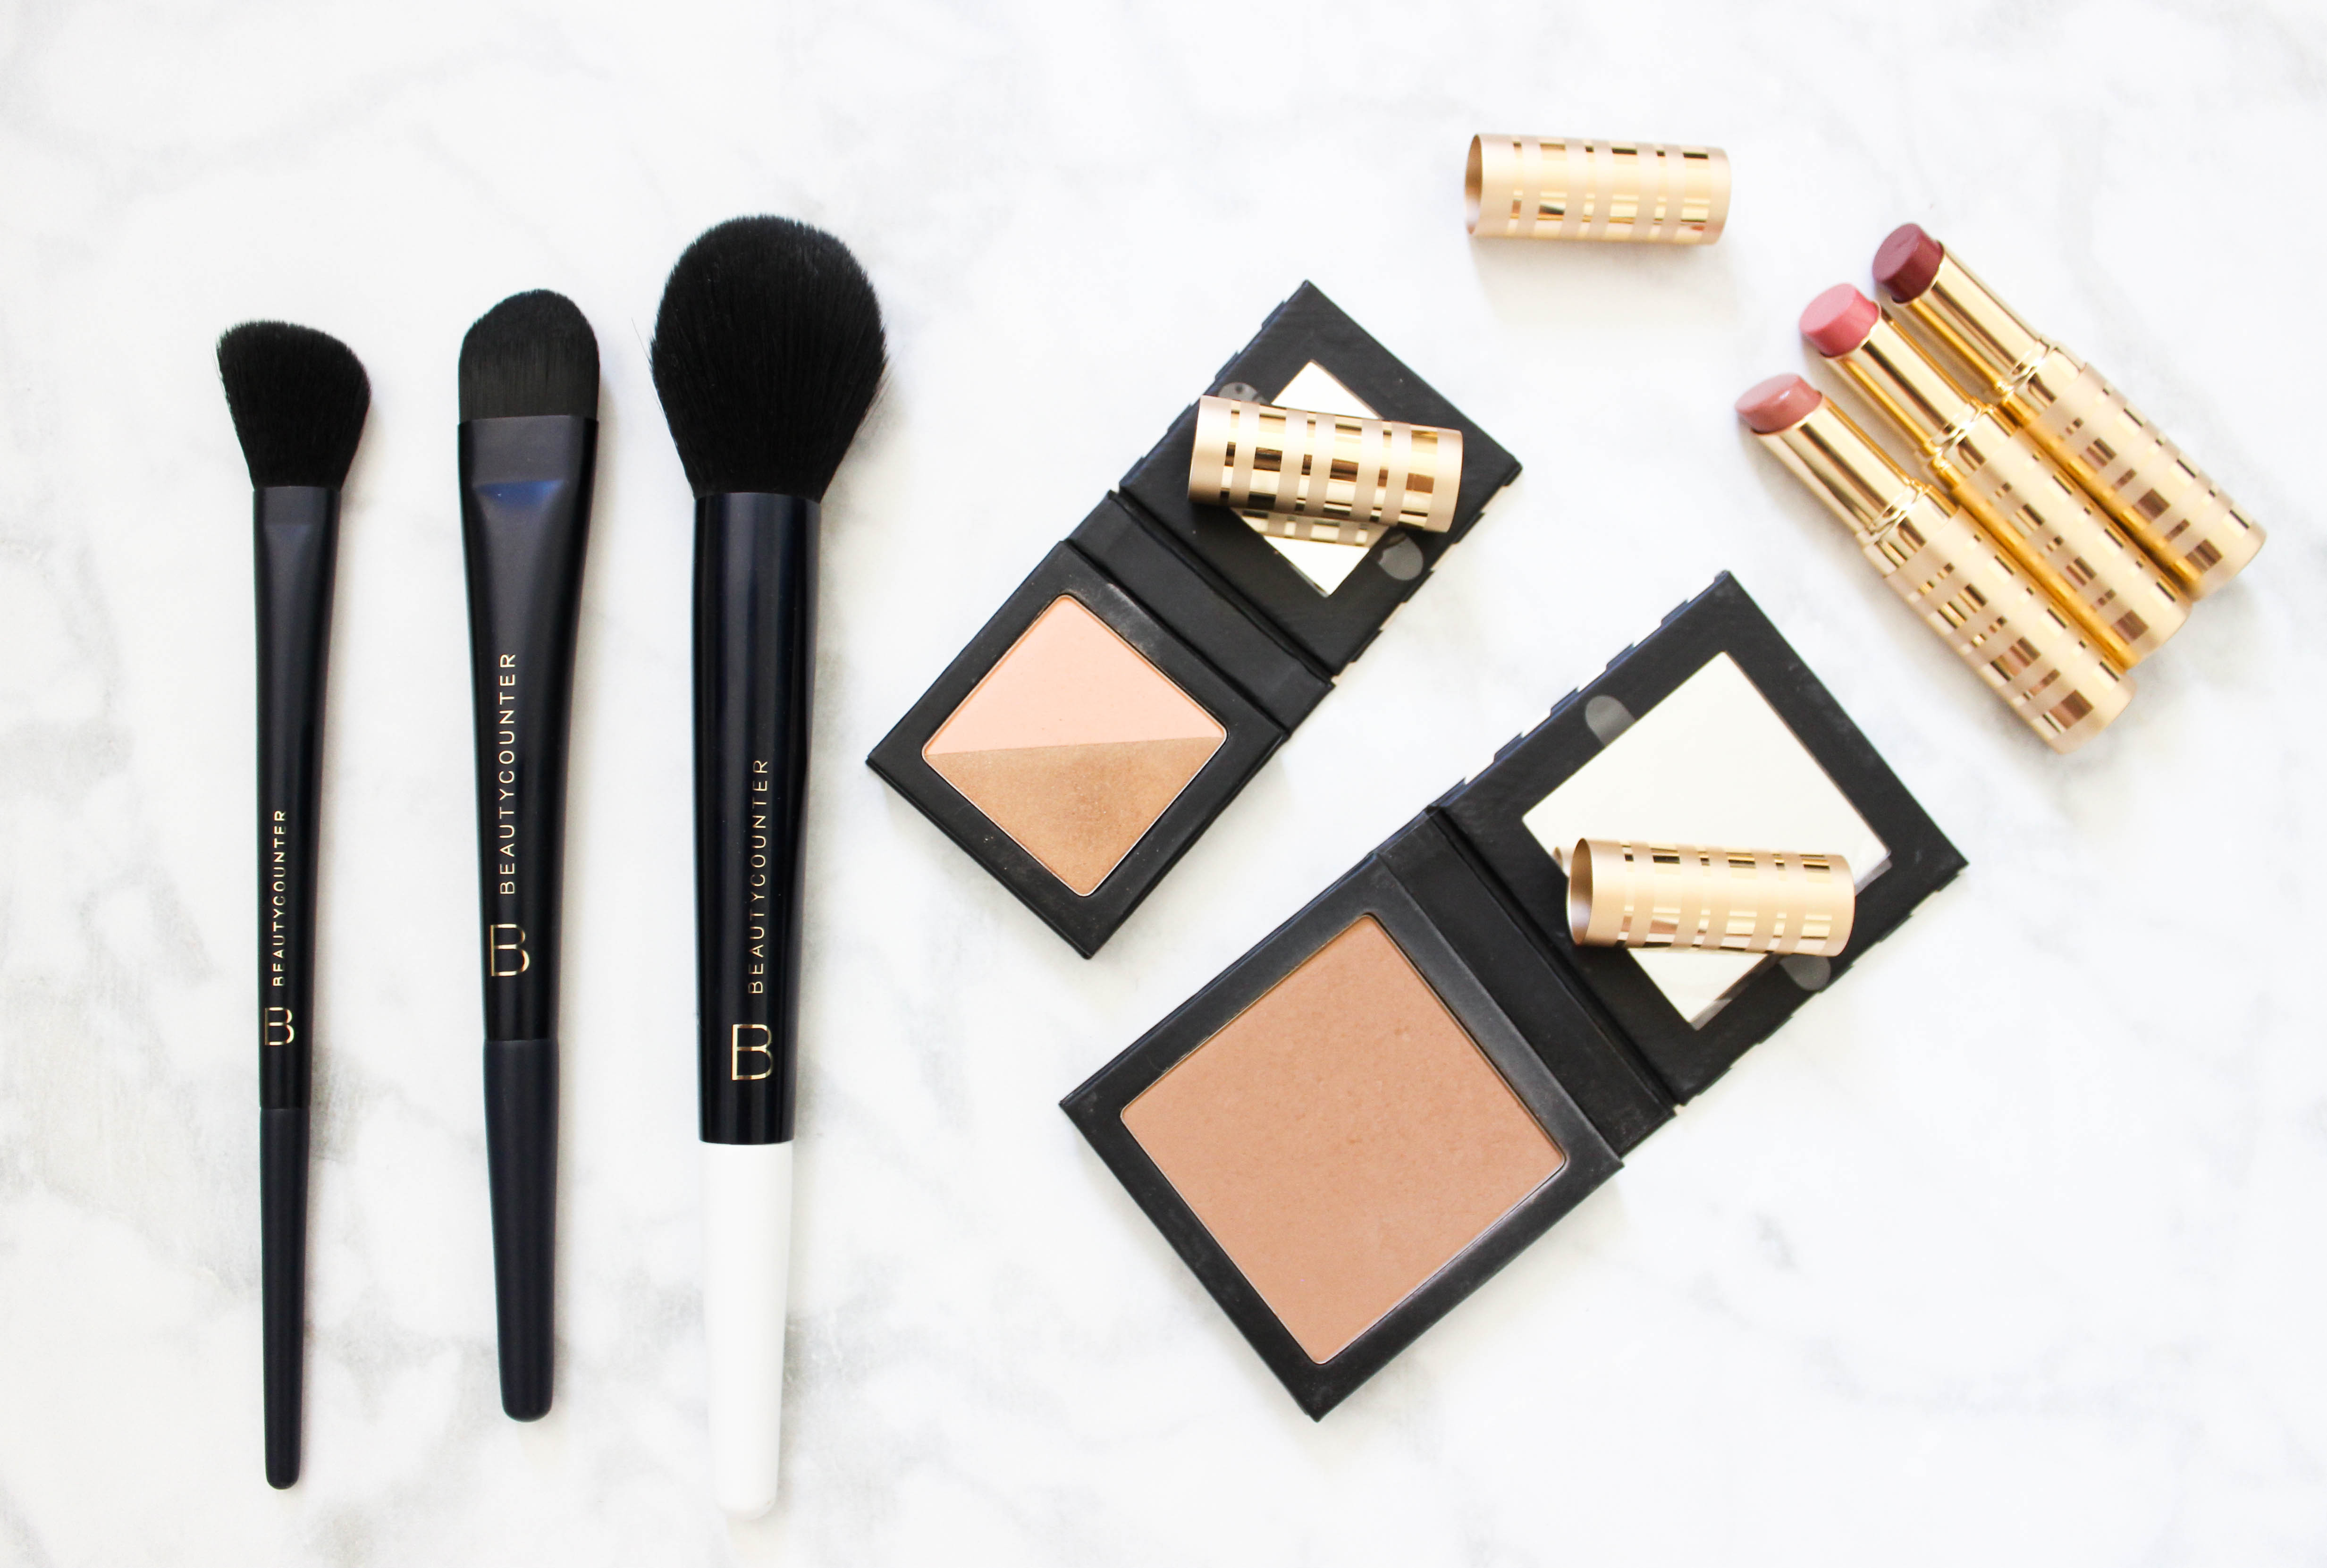 Switching to Safer Beauty with Beautycounter